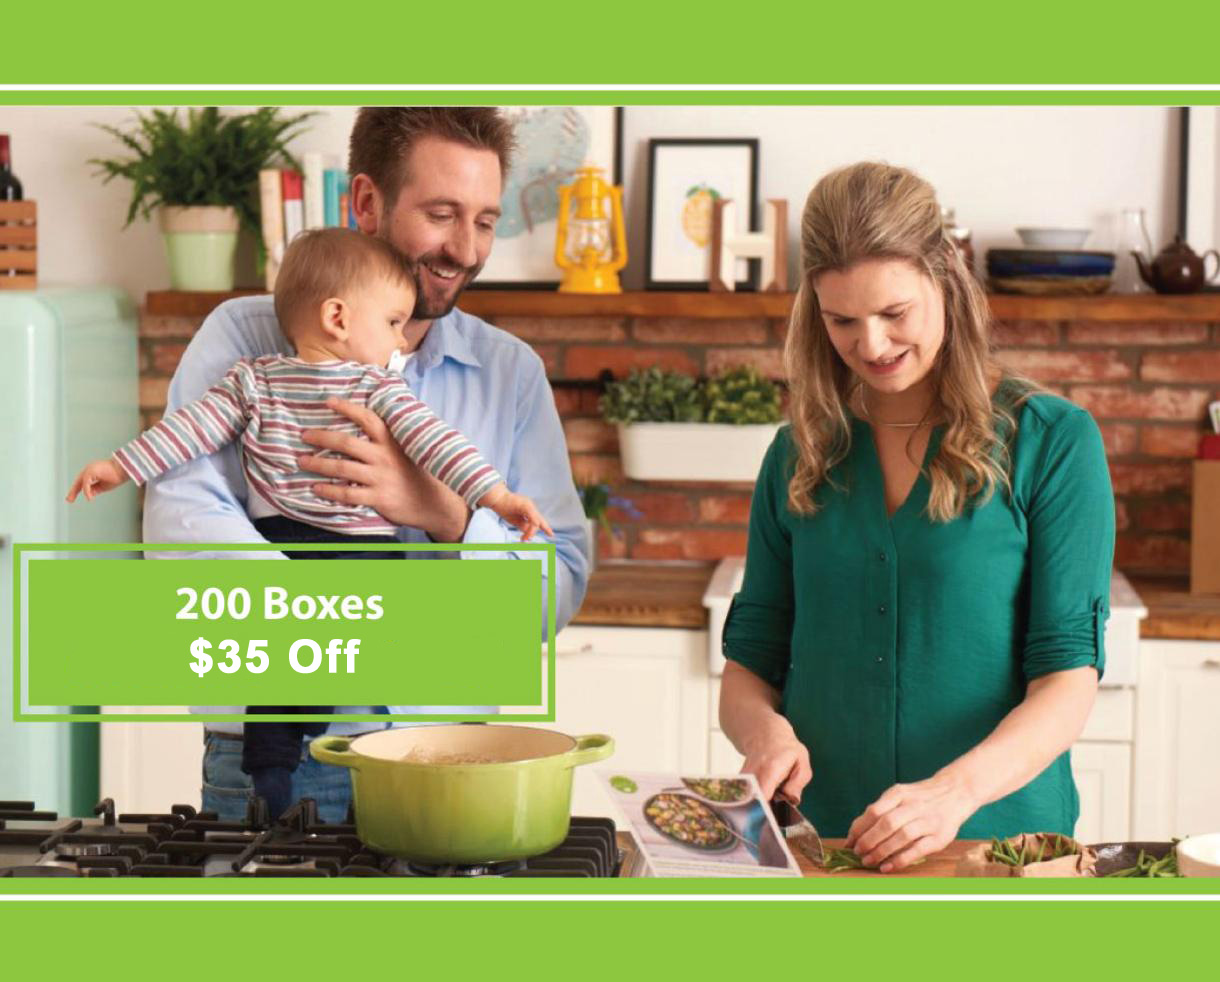 Goodbye Dinnertime Hassle, HelloFresh! $35 Off Your First HelloFresh Box With Code ​HELLOCK35